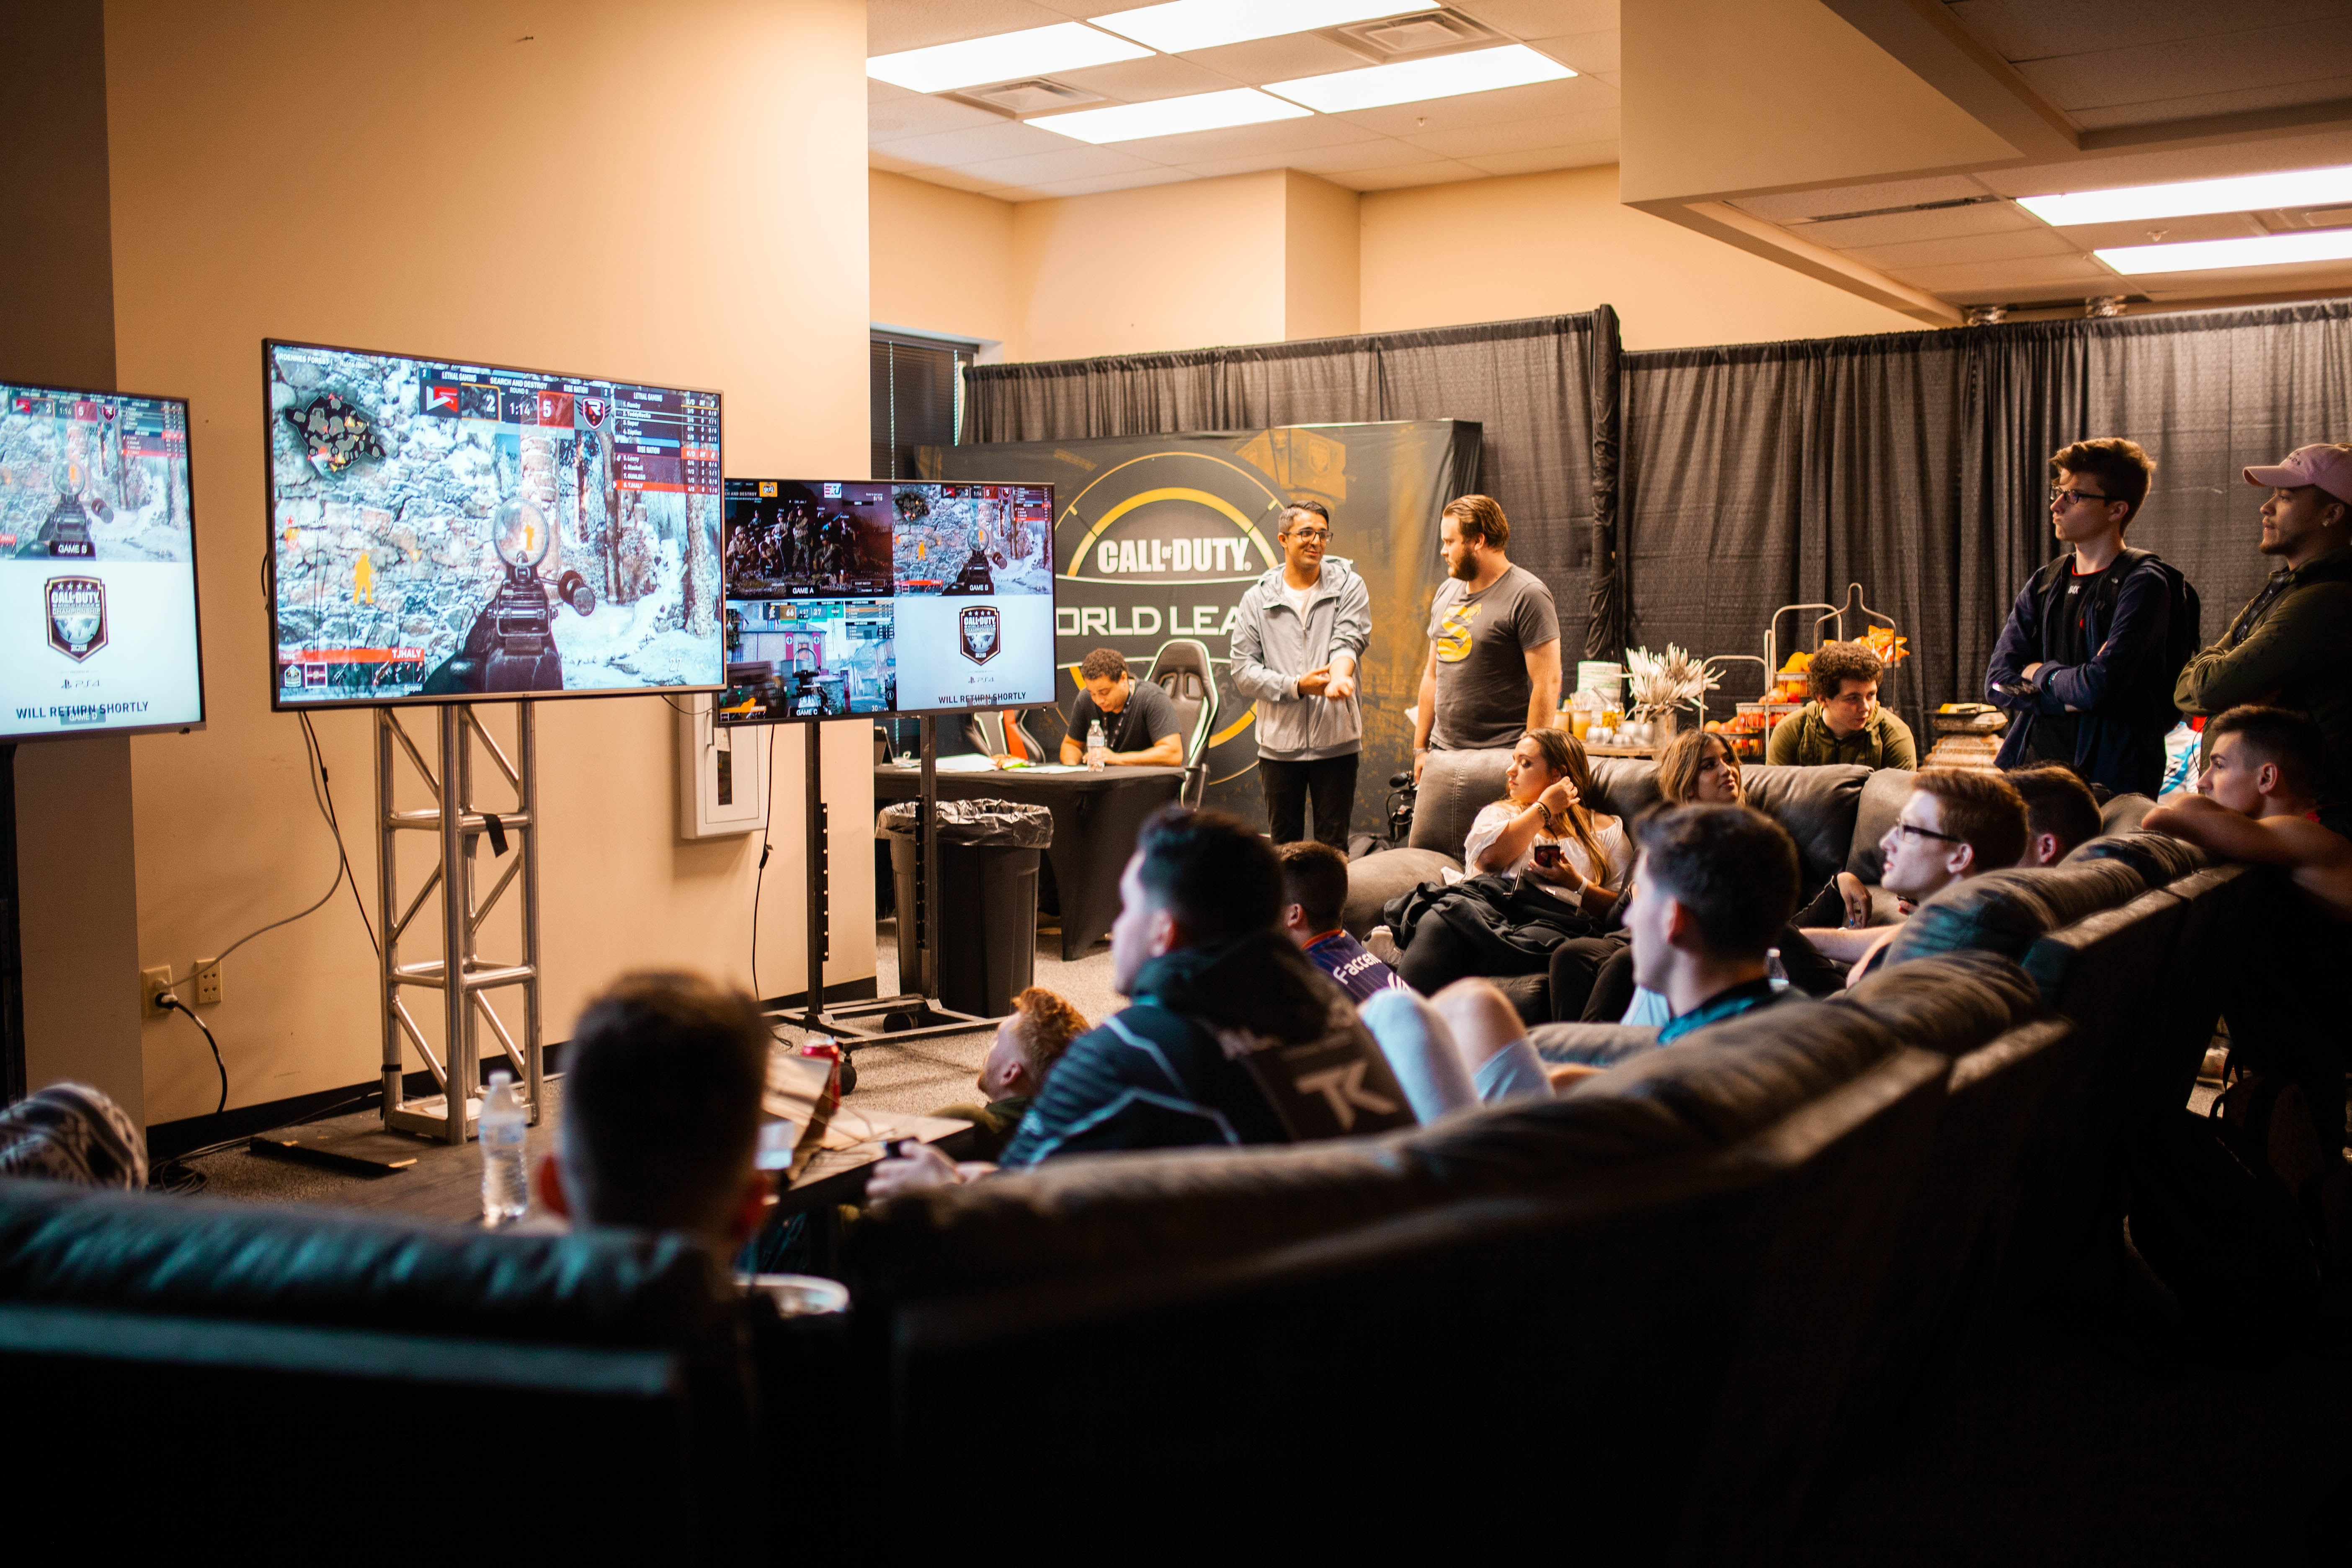 Esports programmes provide an avenue for employability and professional development in the gaming industry